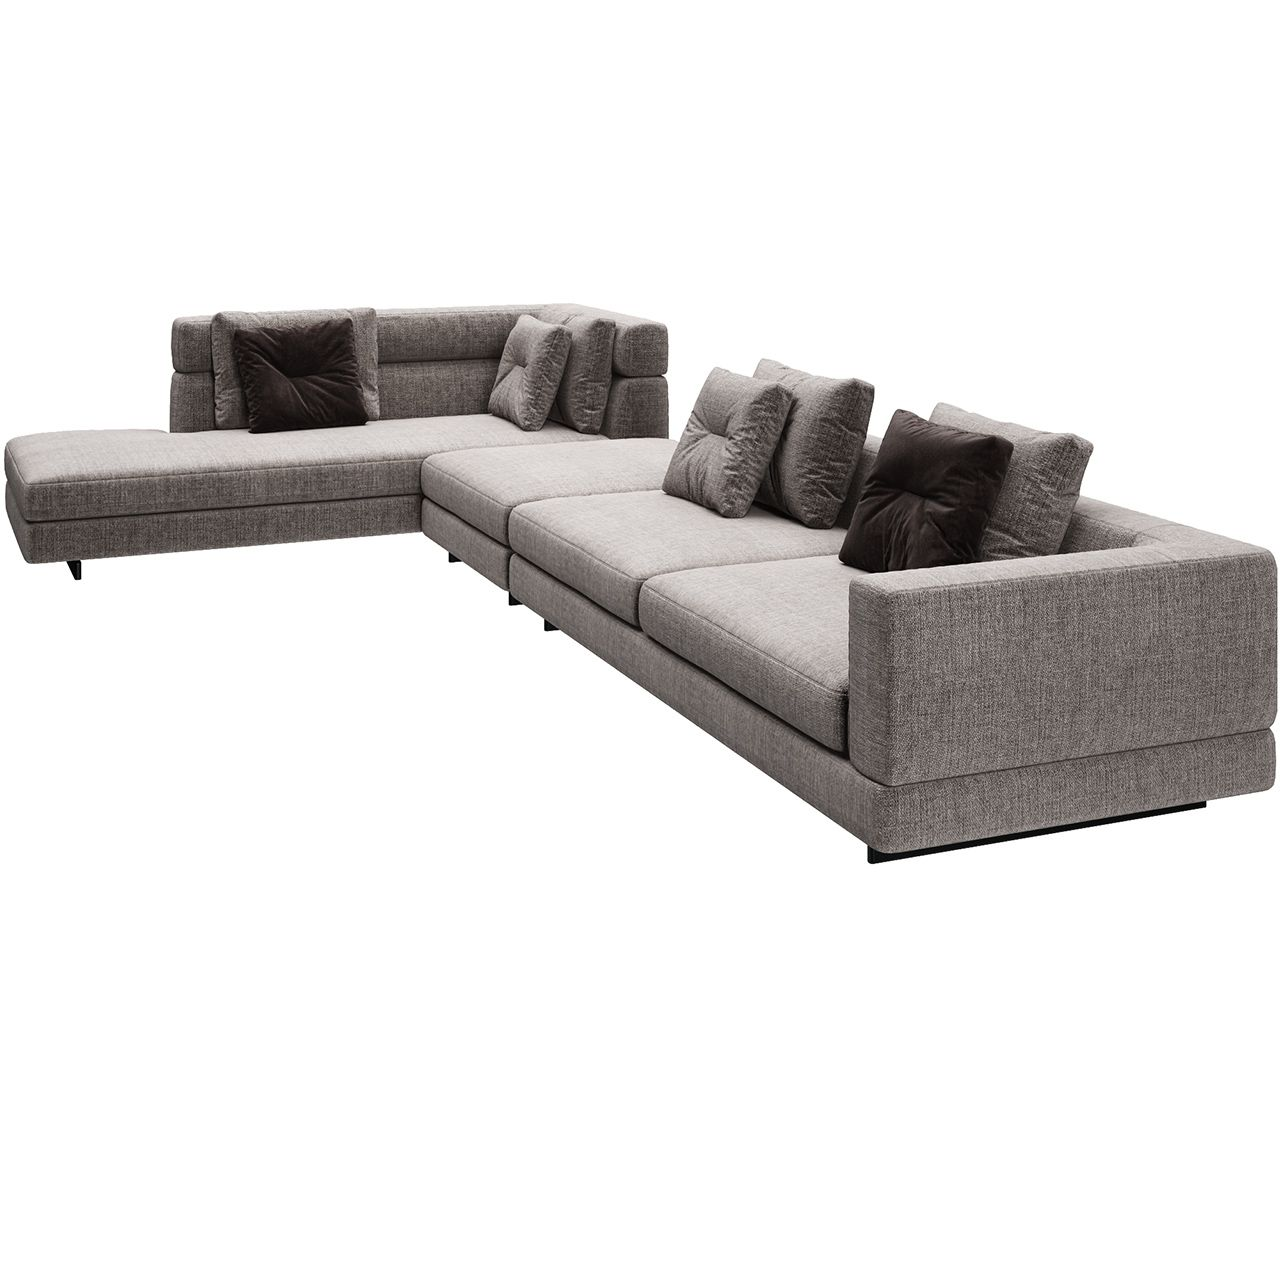 Alexander 06 Sofa By Minotti Dimensiva Sofa Furniture Vintage Sofa Minotti Sofa